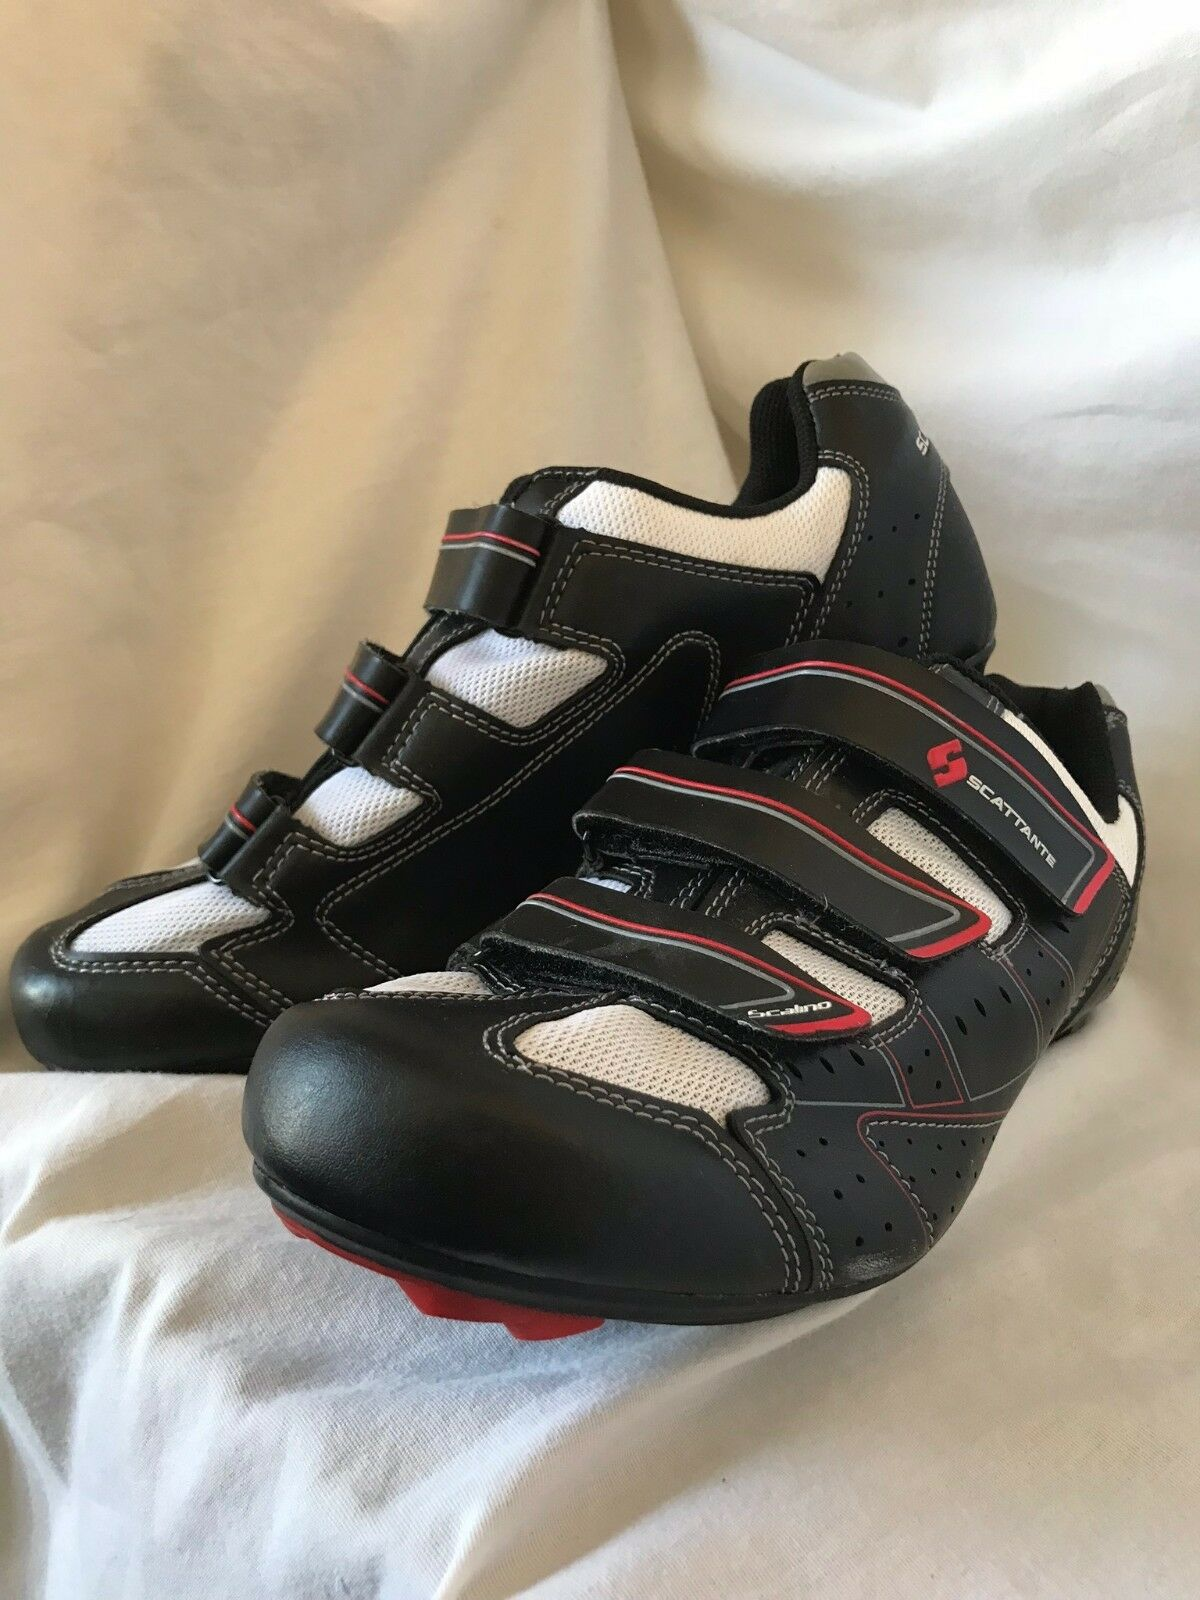 Scattante Scalino Cycling shoes Size 43  EU   9.5 US Lightly Used  healthy